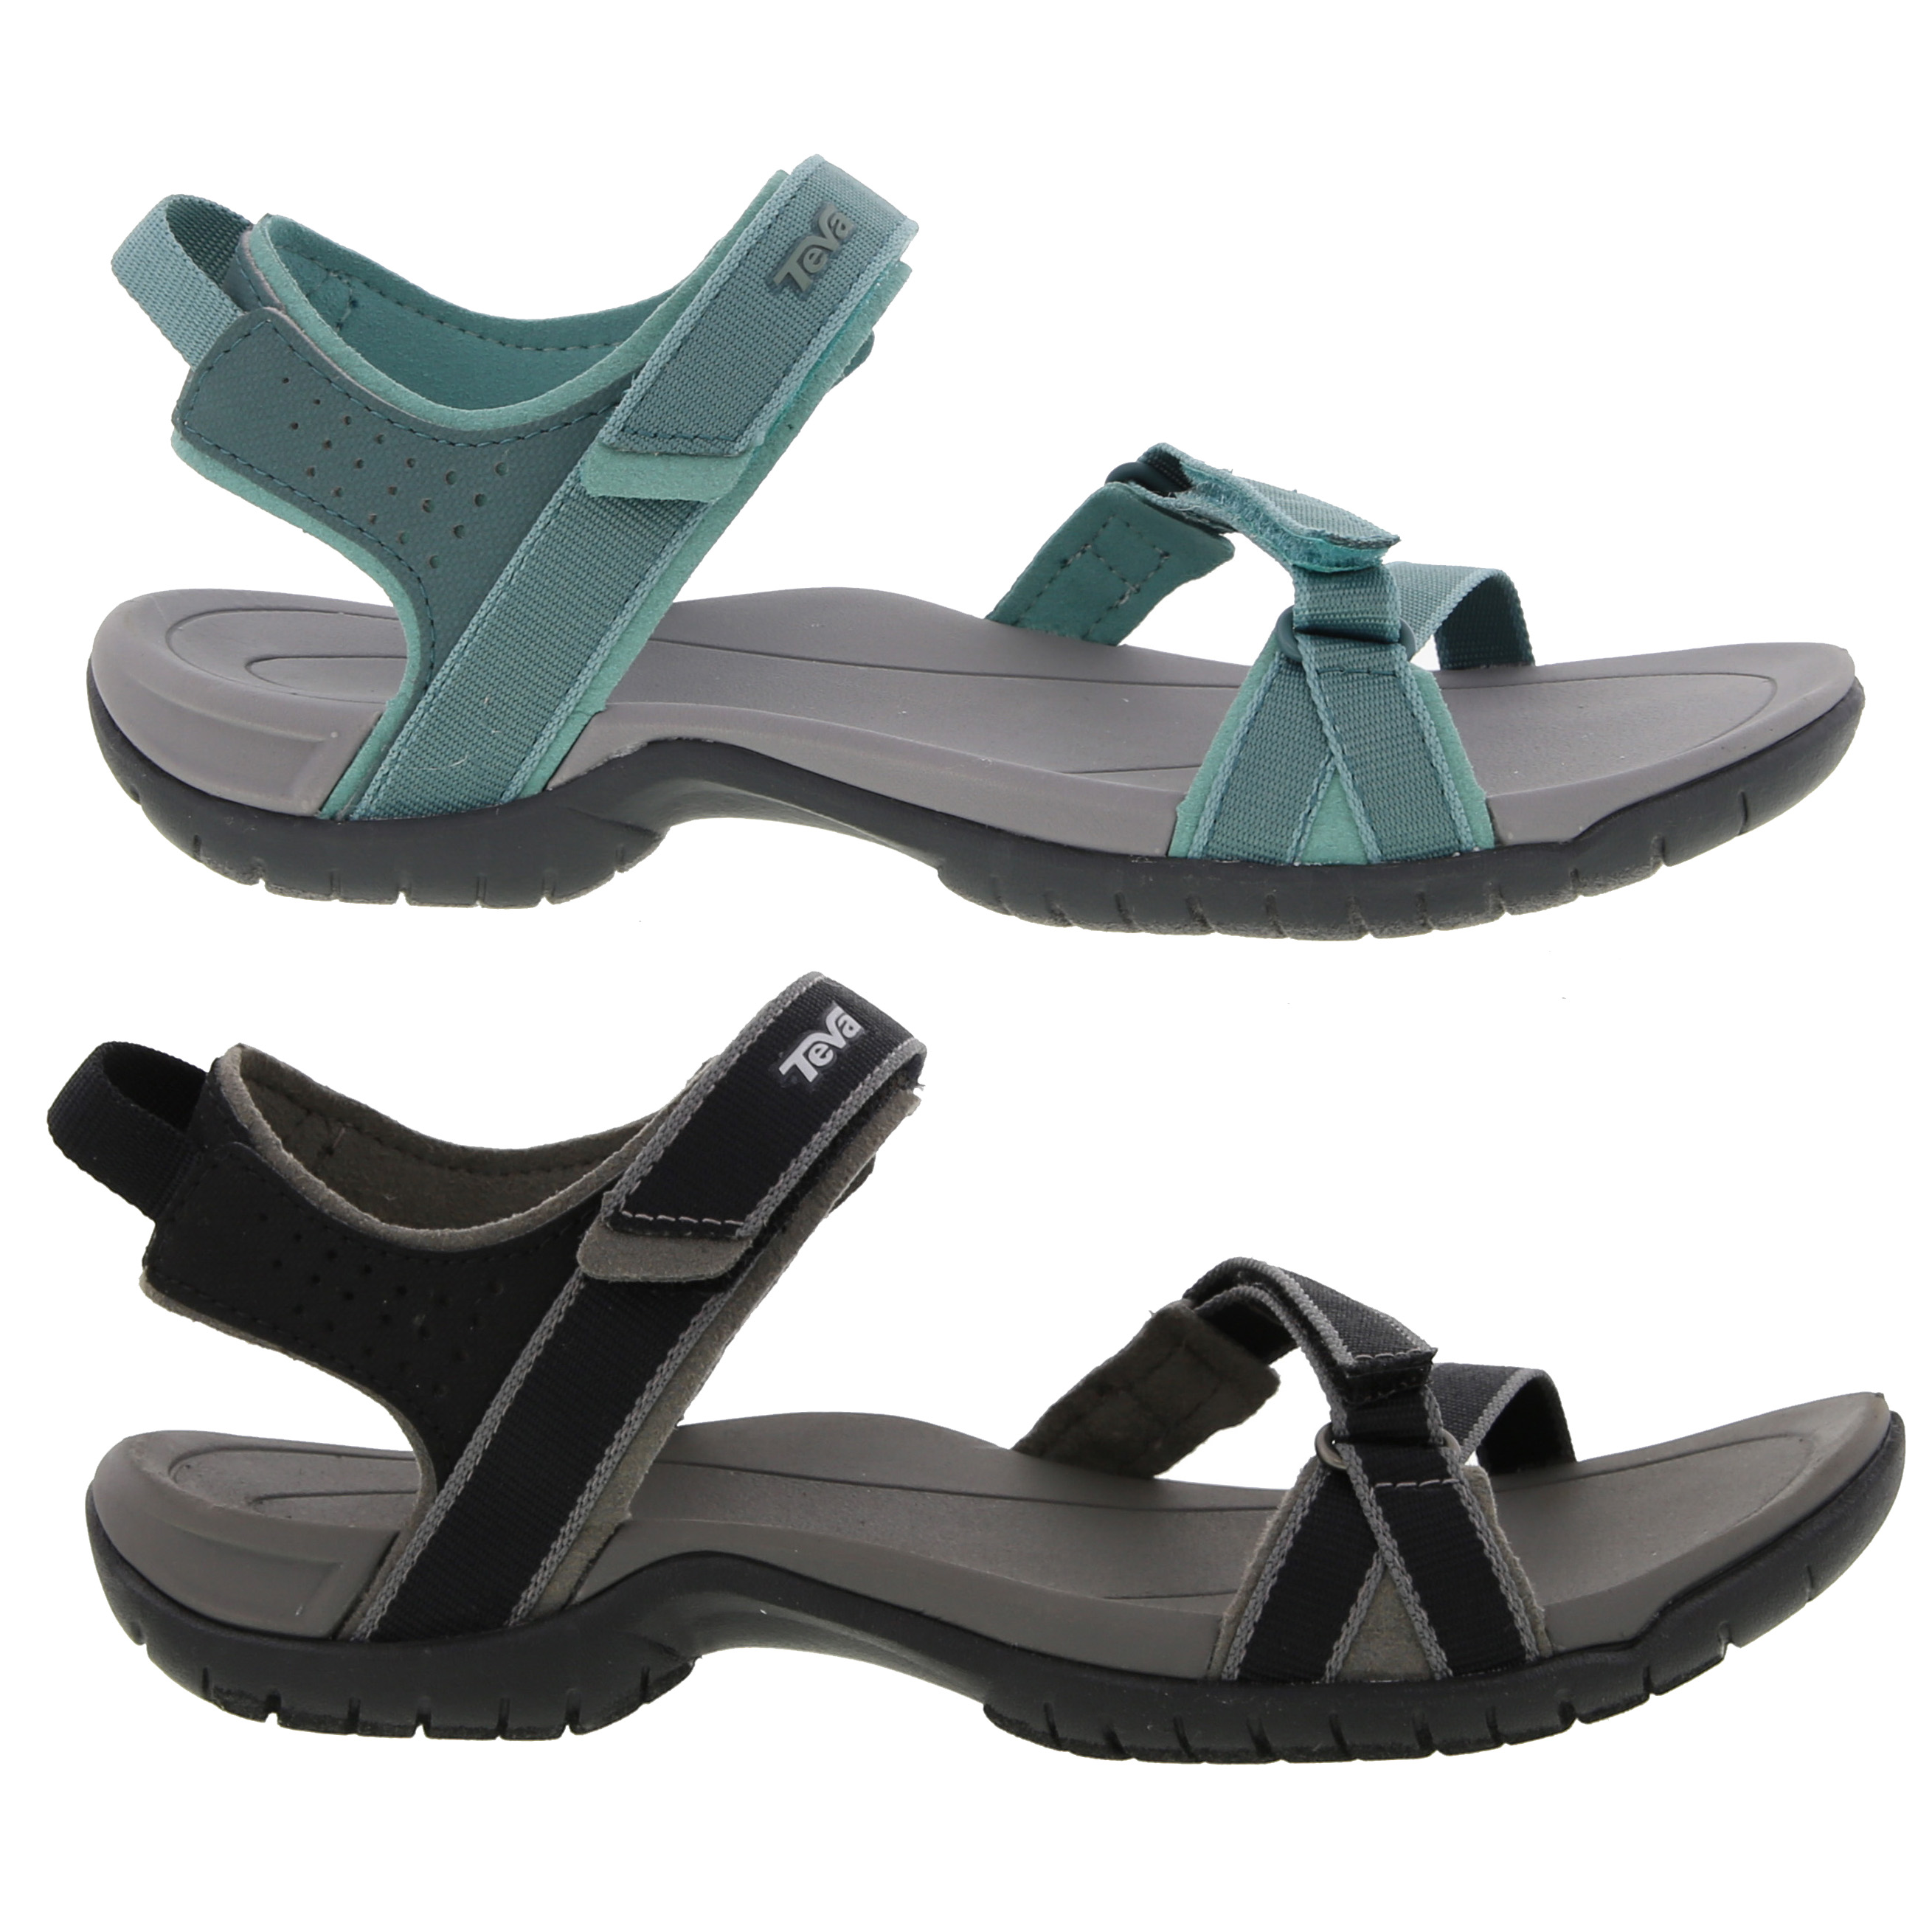 Details about Vintage TEVA UNIVERSAL APPROACH Womens Size 8 SPIDER RUBBER SANDALS